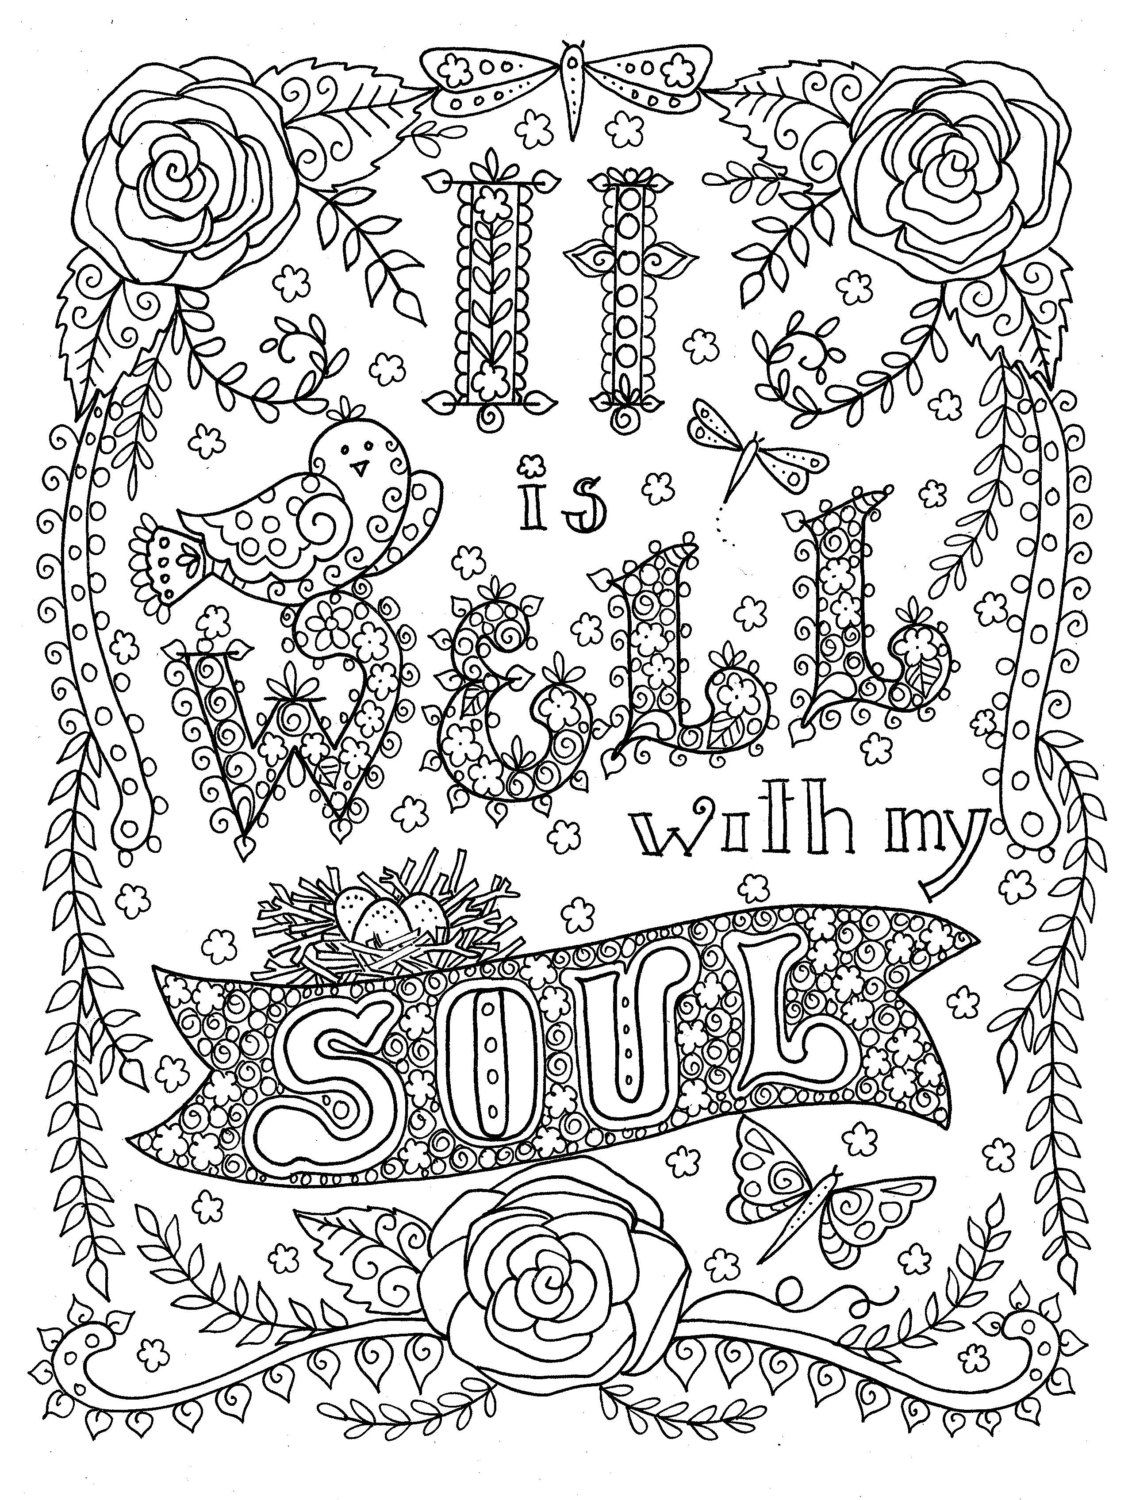 Digital Download Hymn Coloring Page It Is Well With My Soul Digi Stamp Print To Color